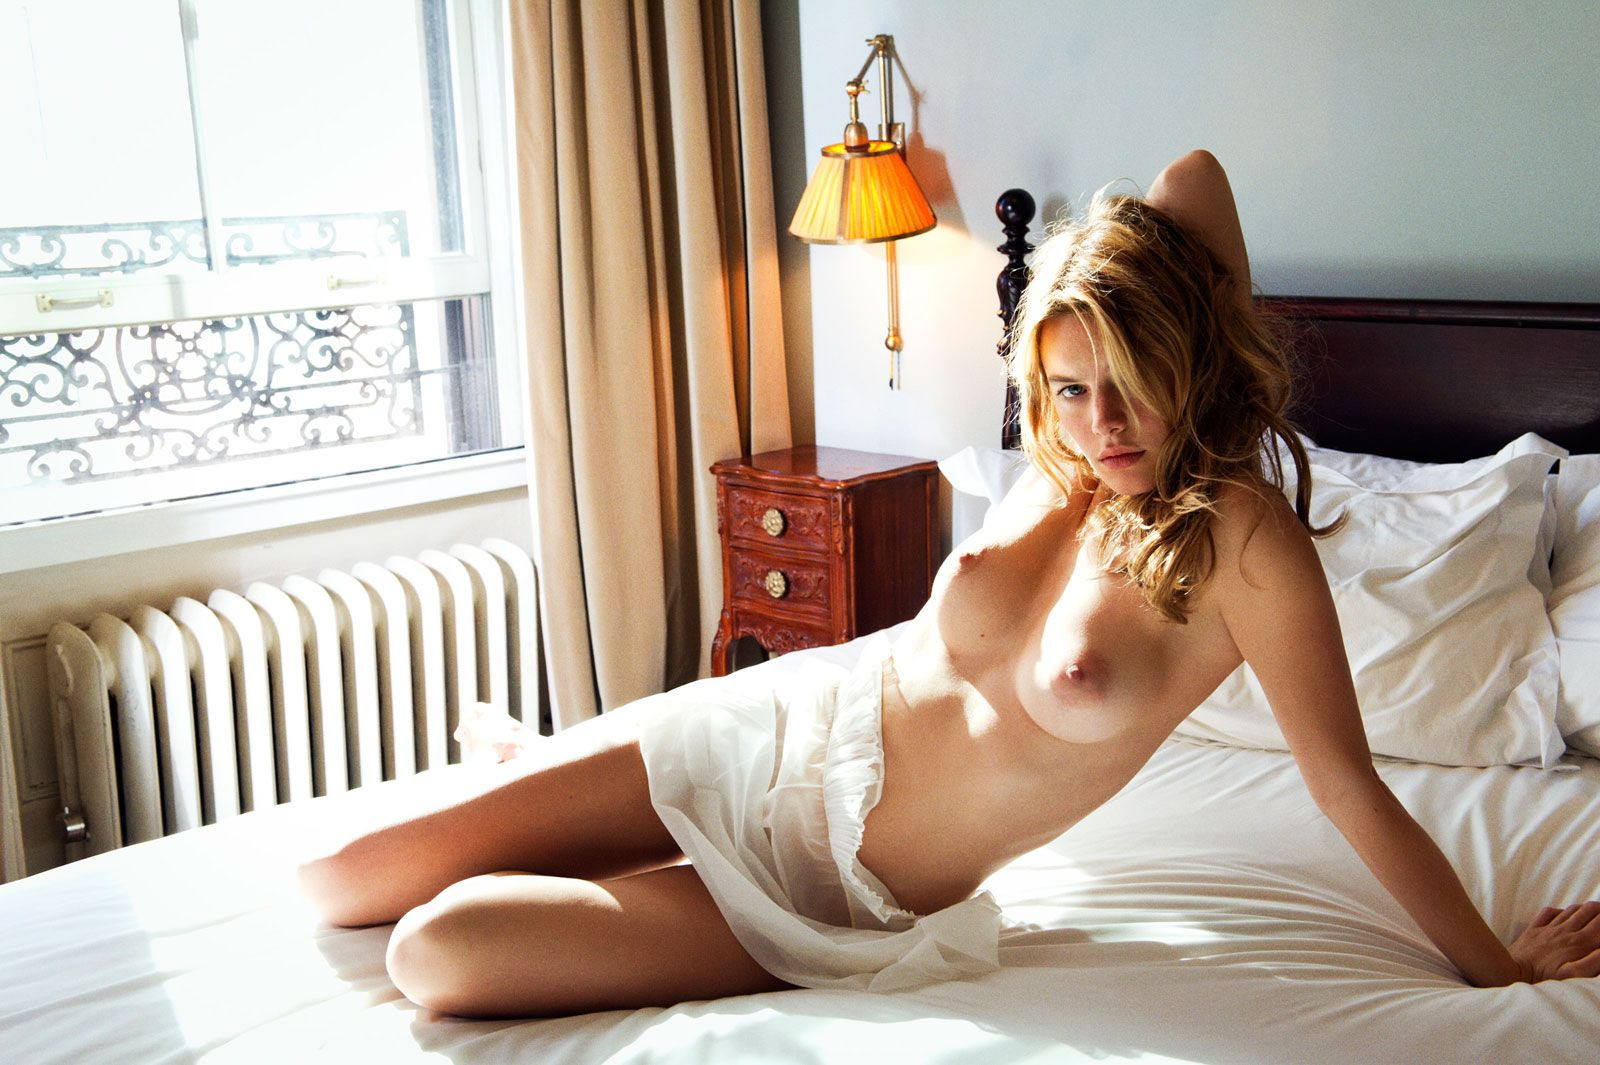 Camille Rowe Nude 4 TheFappening.nu